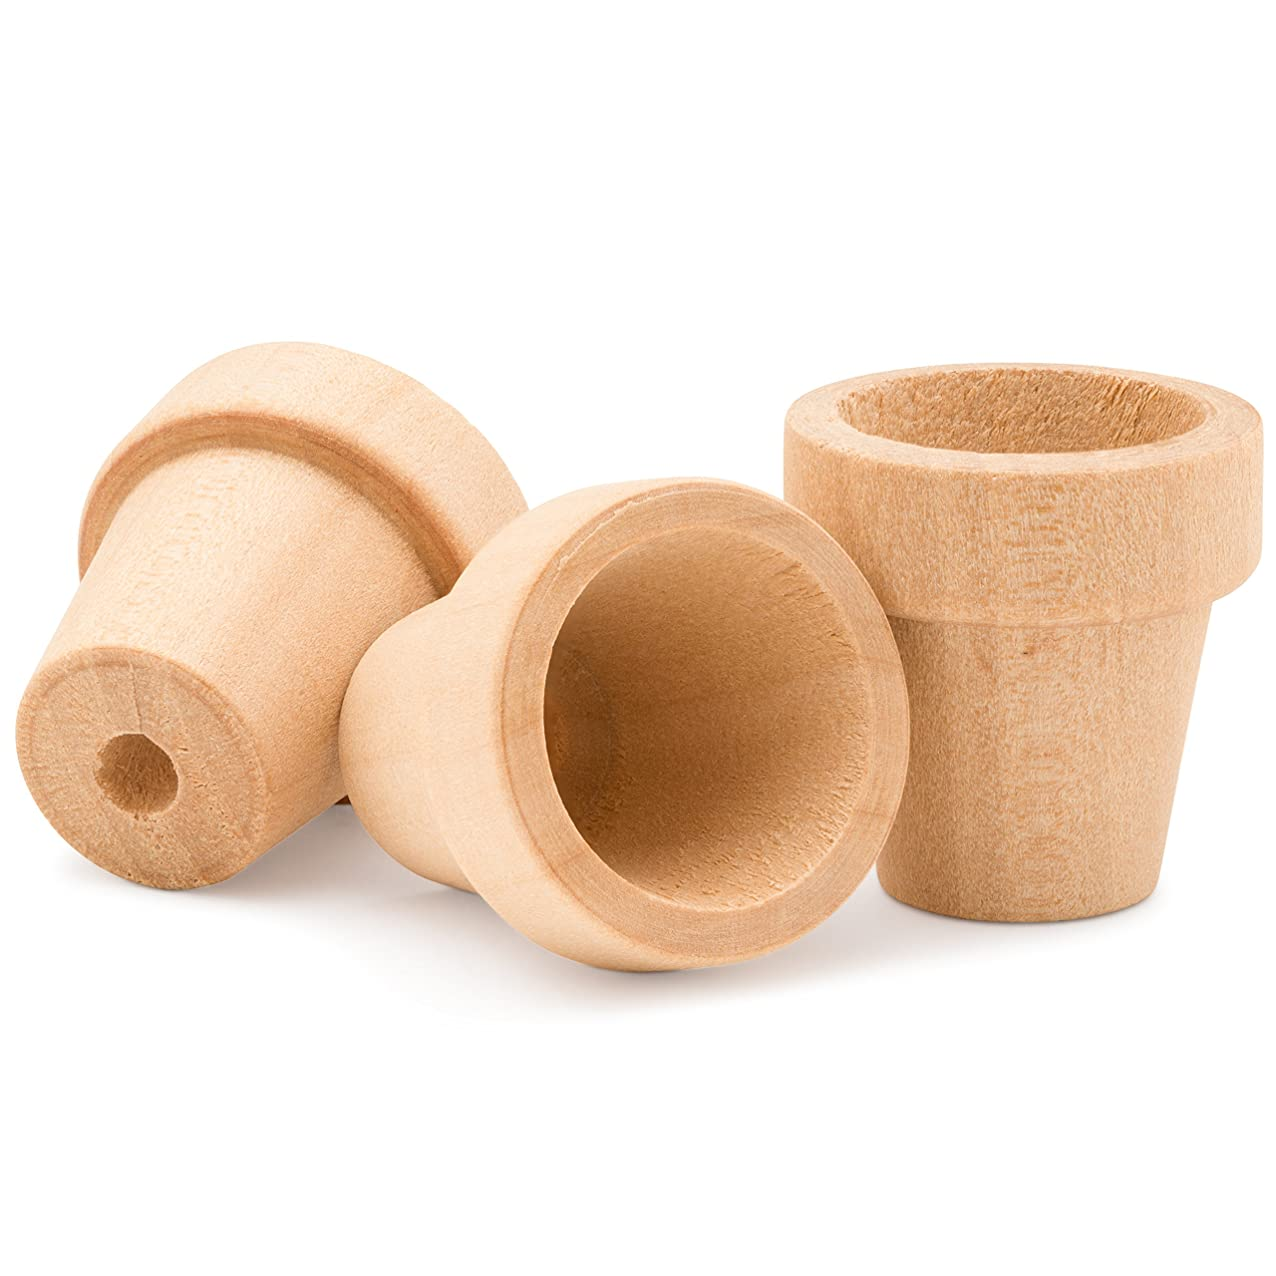 Craft Flower Pot -1-1/2 inches Tall and 1-5/8 inch Wide at Opening -12 Pack - Unfinished Wood Flower Pot- by Woodpeckers Crafts rqtmdjxqskudg258